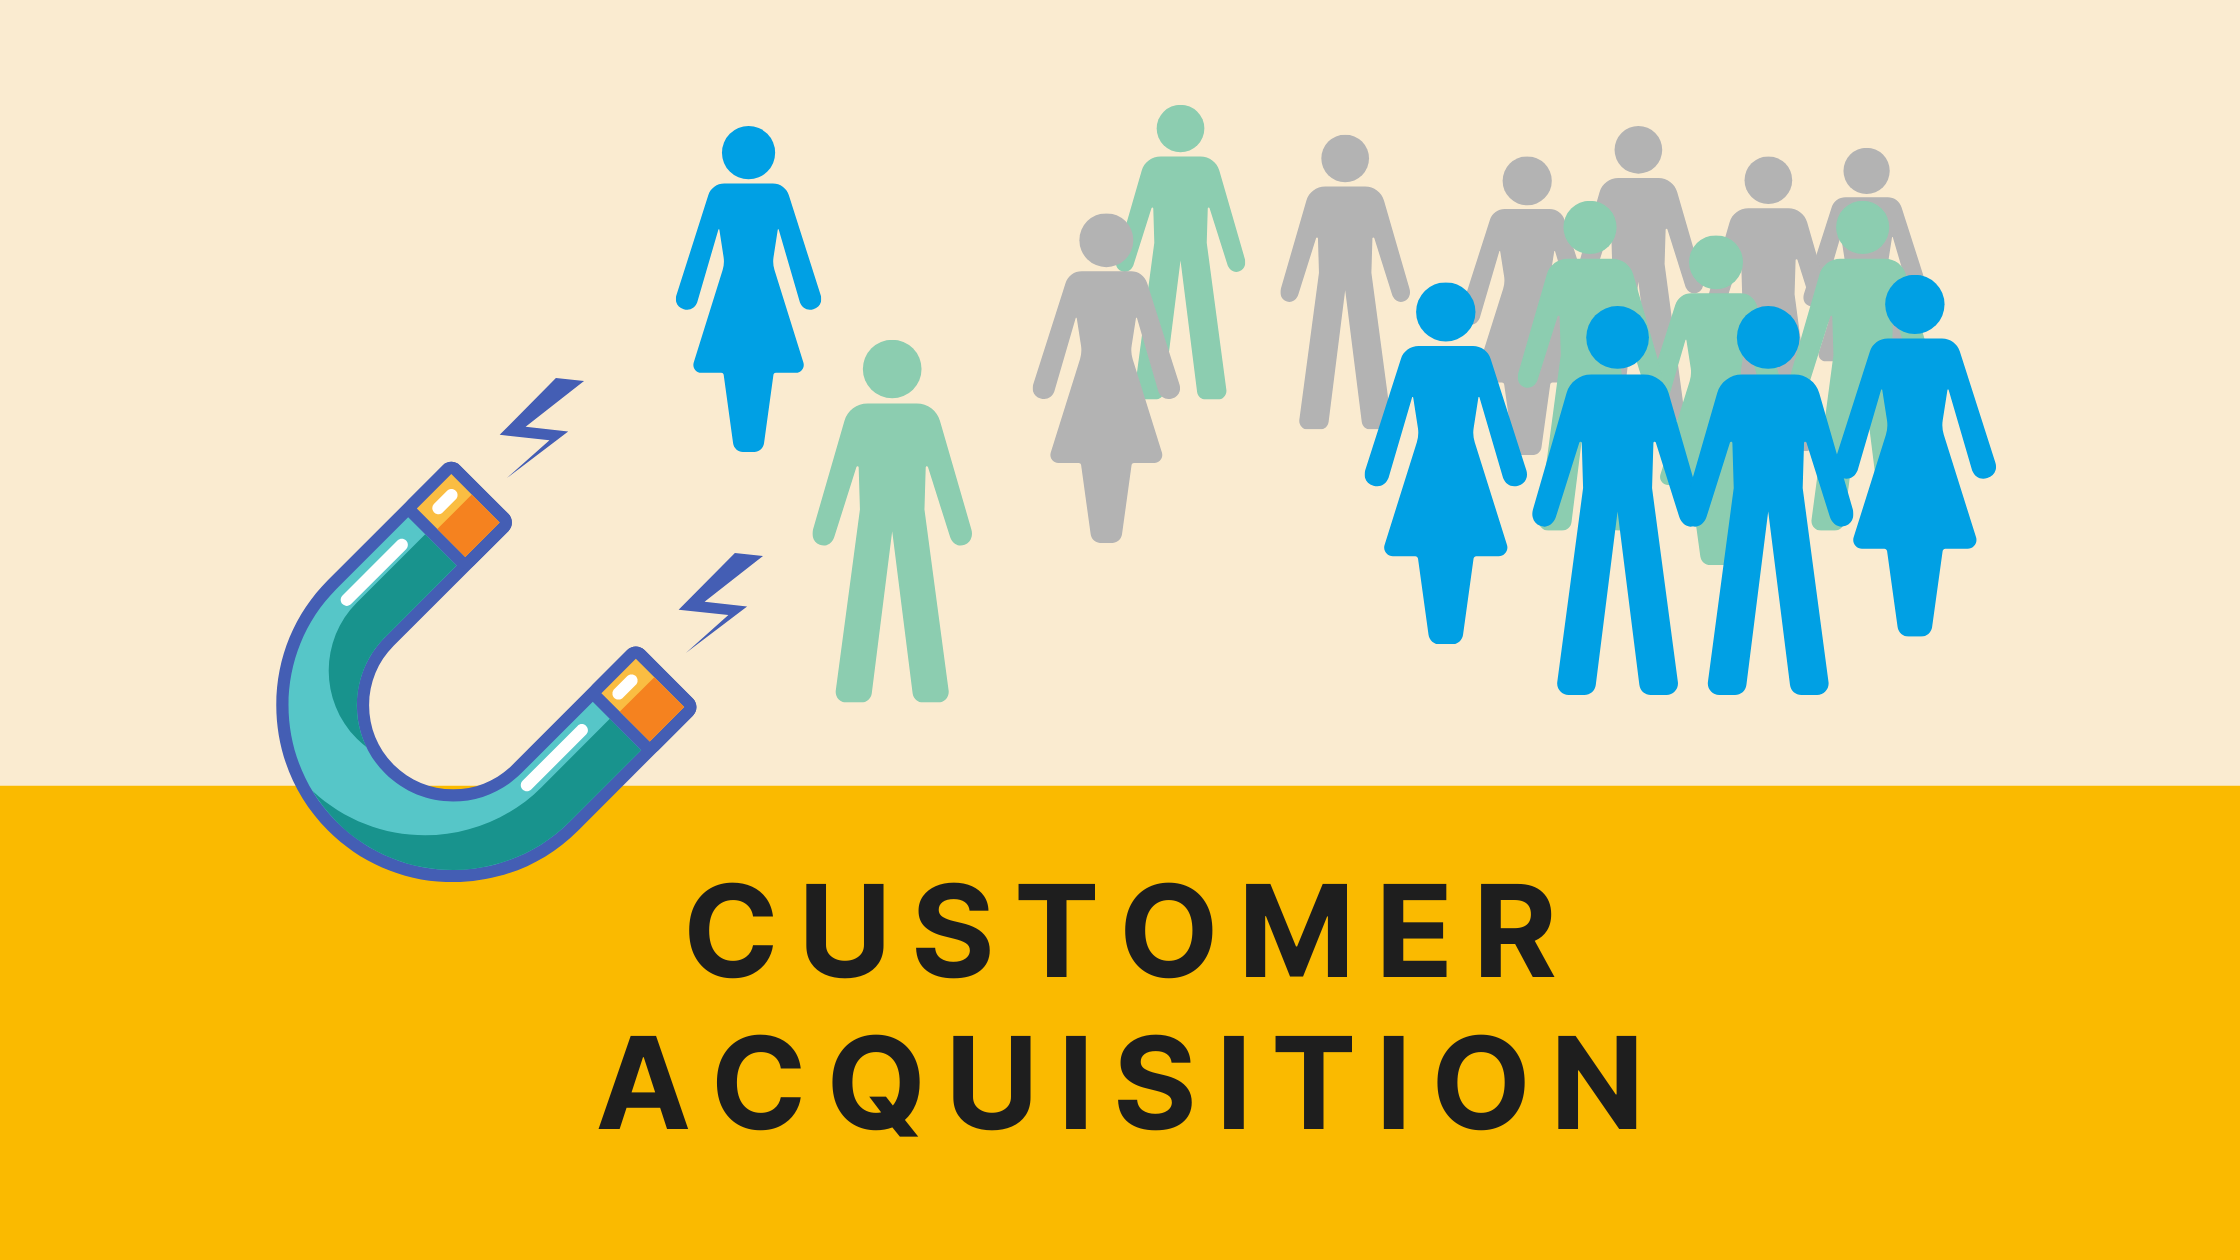 custer acquisition for b2b startups